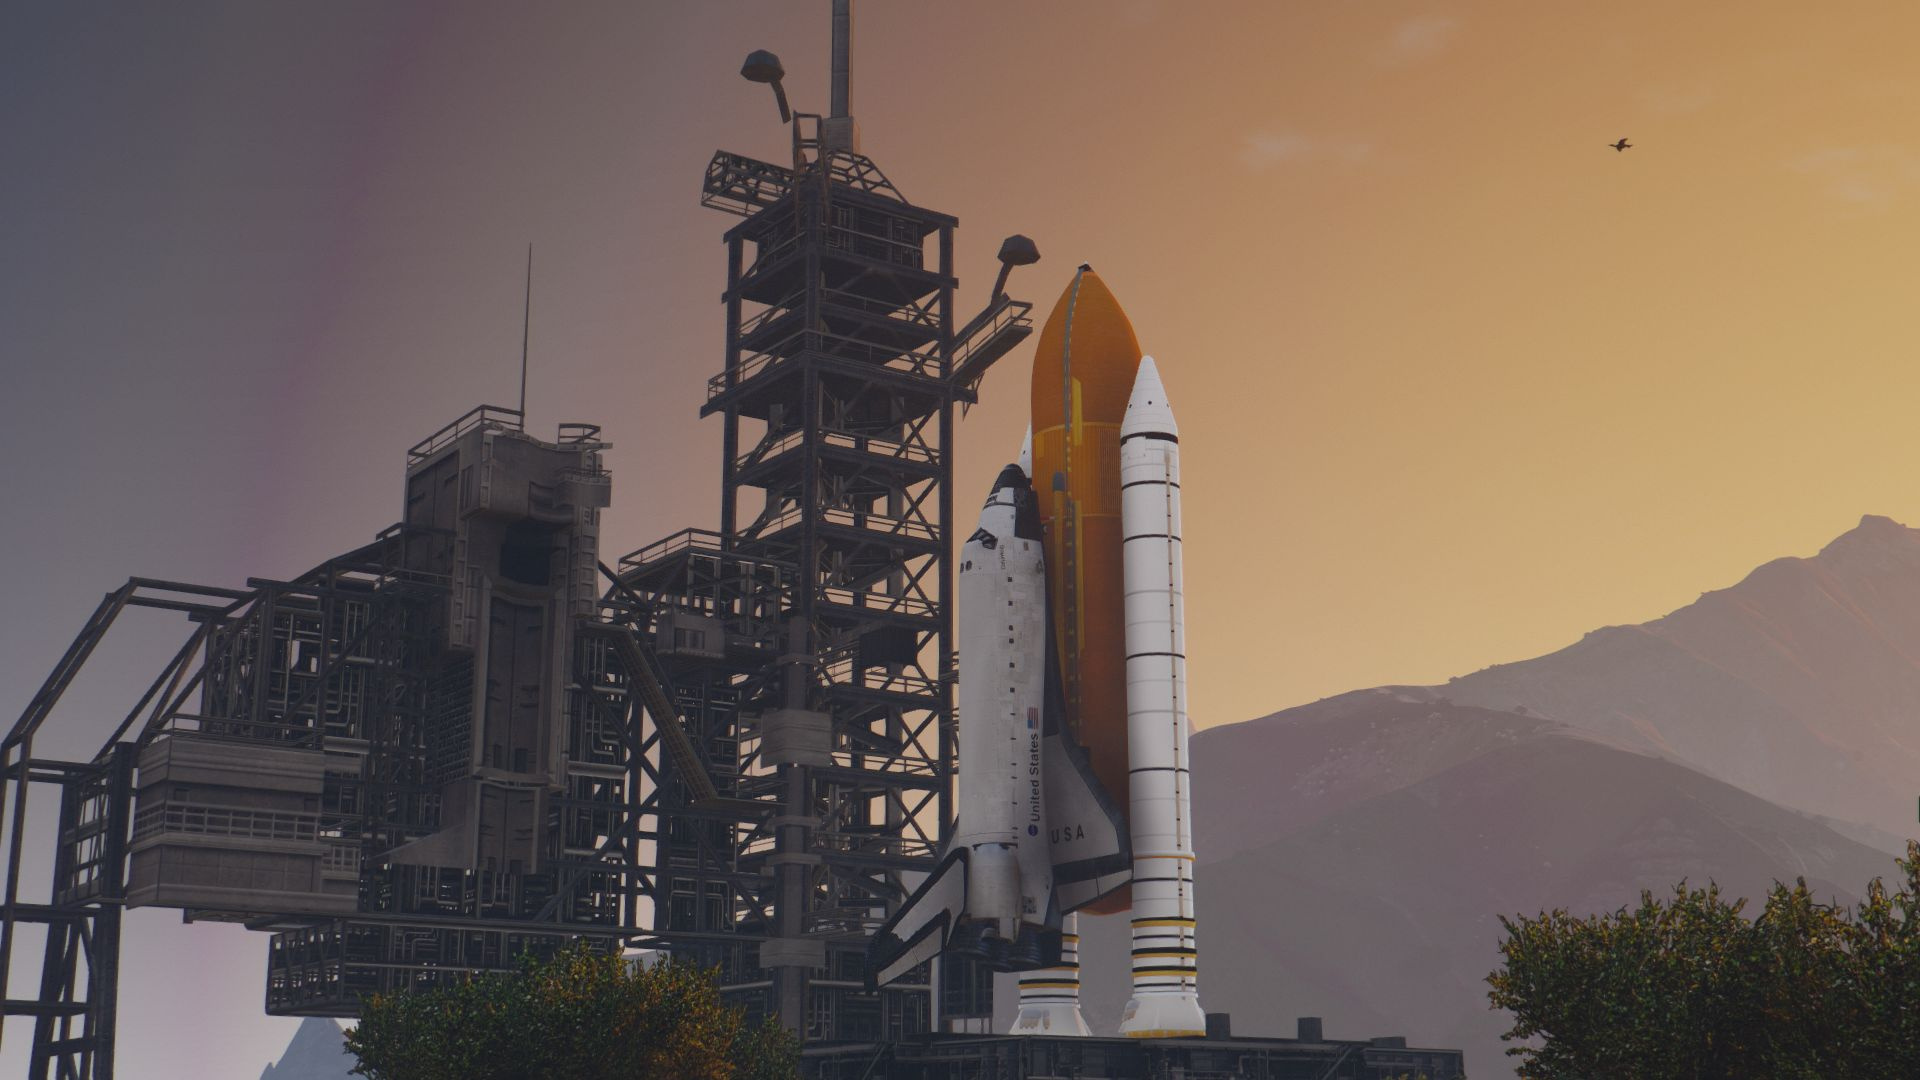 how to get a space shuttle in gta 5